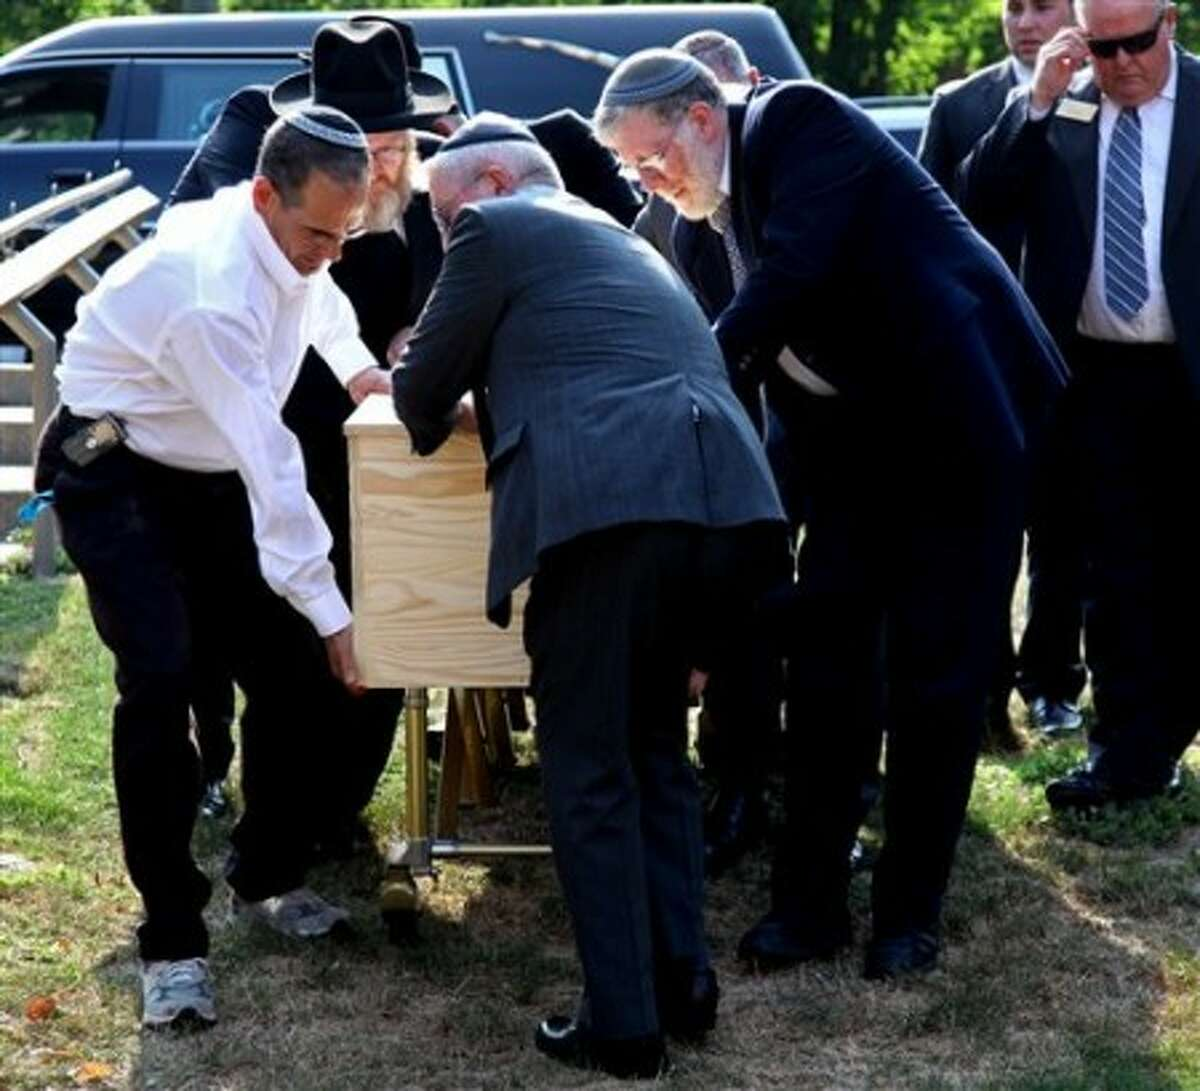 The casket containing Louis Felder is carefully wheeled towards the Congregation Agudath Sholom before the funeral Wednesday, Aug. 4, 2010, in Stamford, Conn. Felder was one of eight people killed Tuesday when Omar Thornton opened fire after a disciplinary hearing at a beverage distributorship where he worked in Manchester, Conn. (AP Photo/Craig Ruttle)